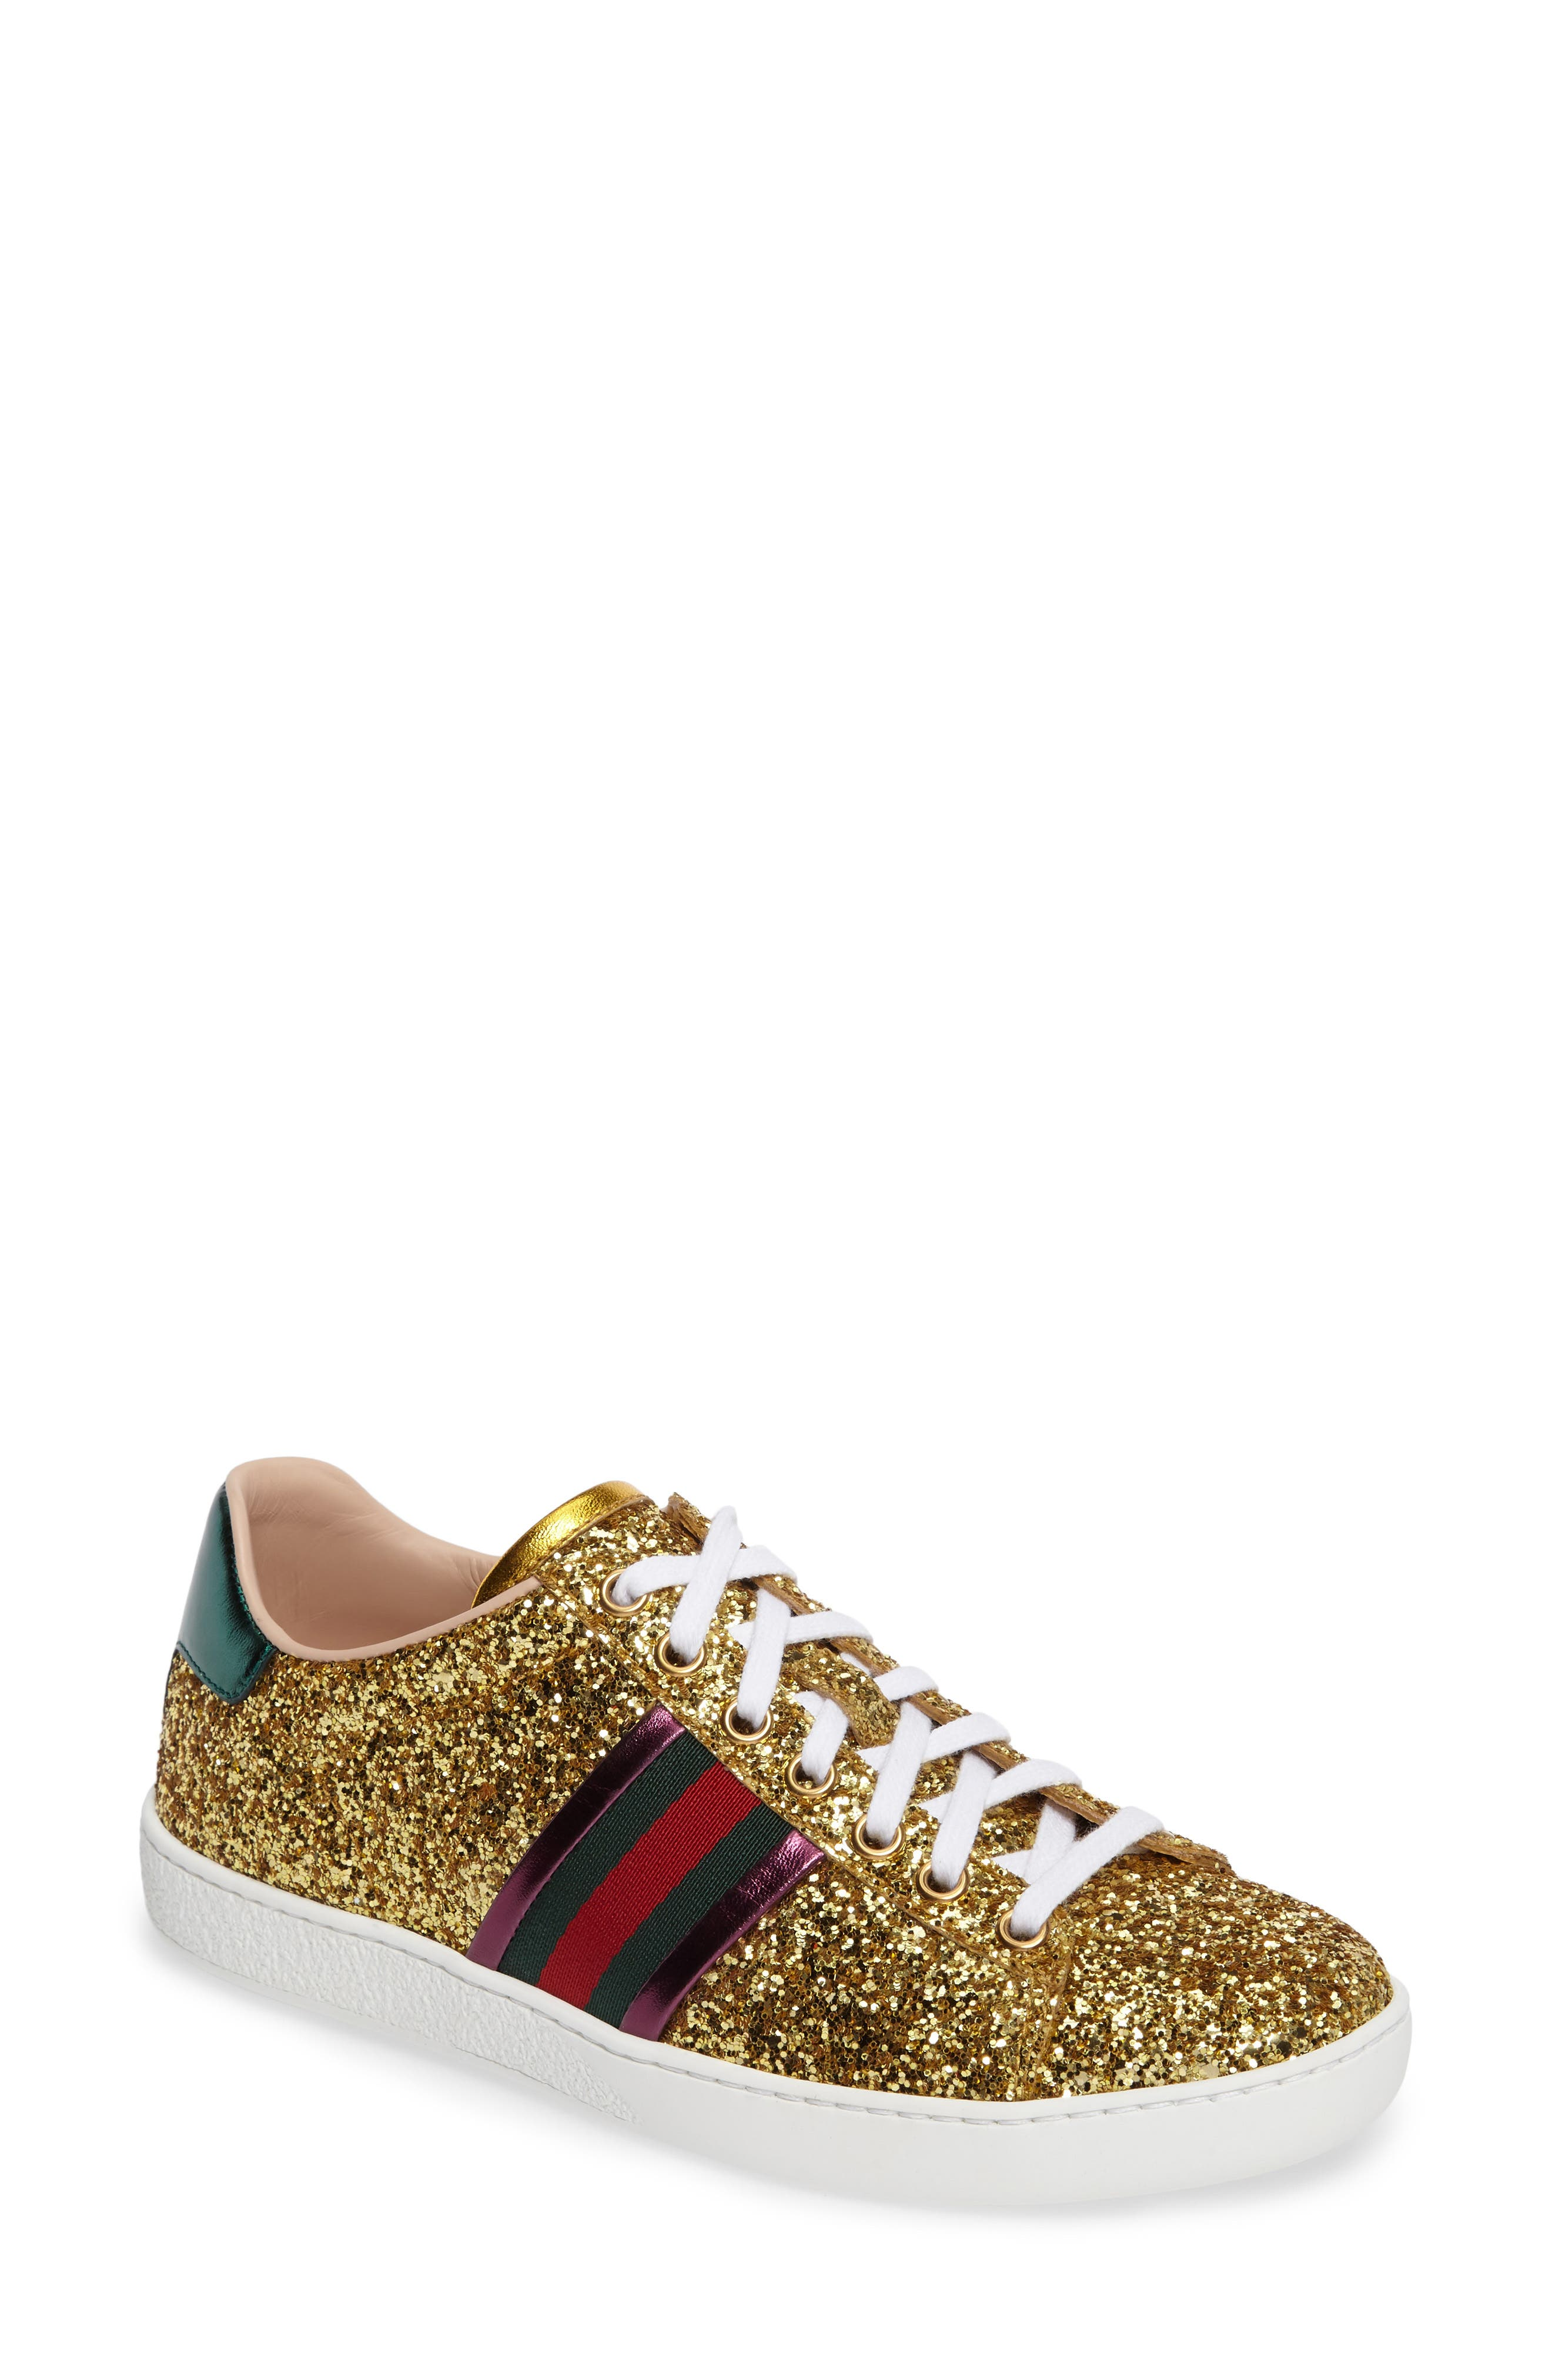 Alternate Image 1 Selected - Gucci New Ace Glitter Sneaker (Women)